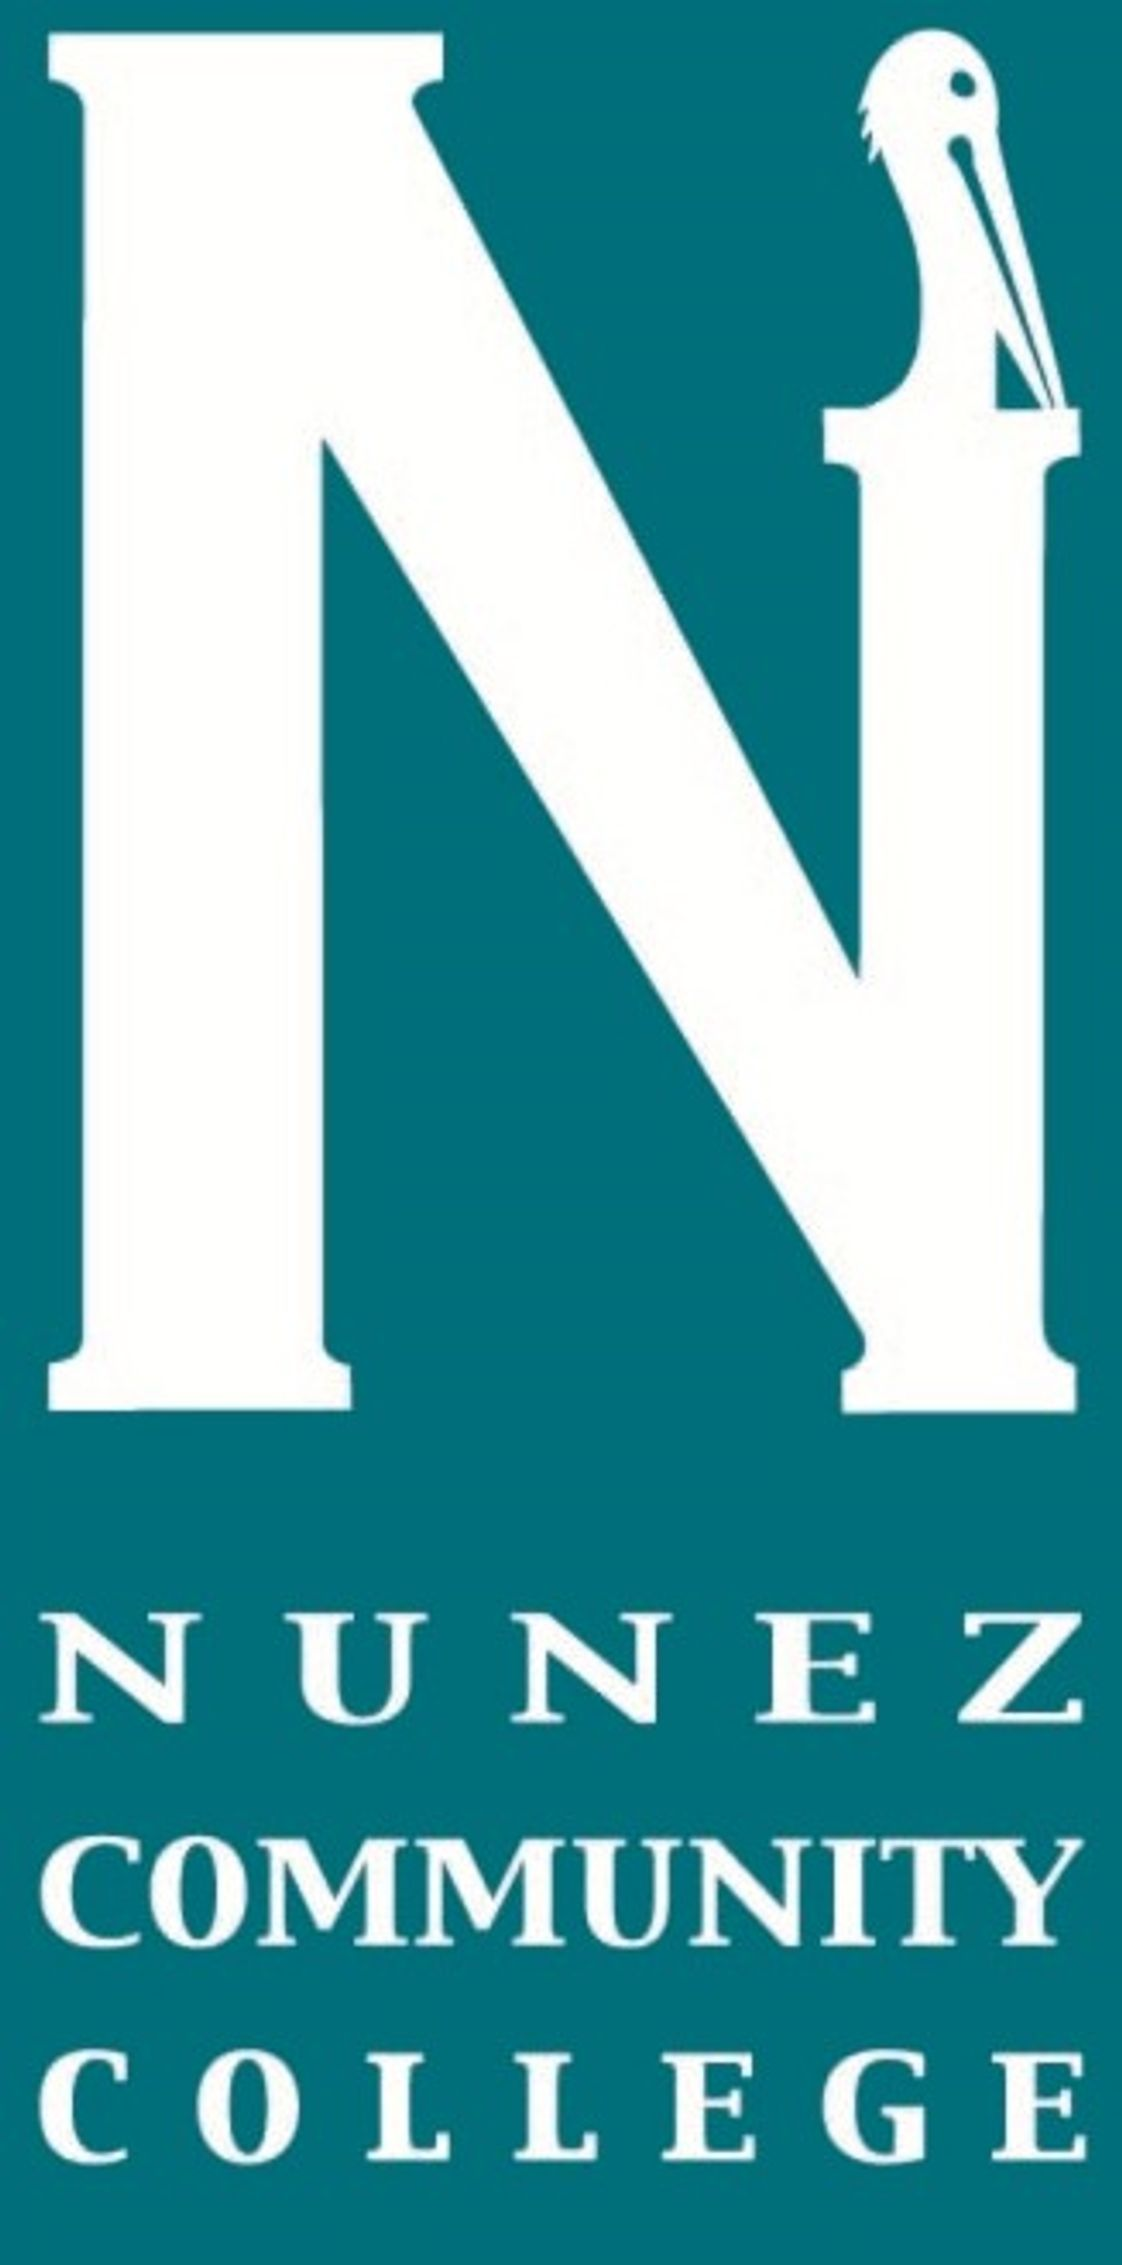 Nunez Community College Photo - Nunez Community College logo.